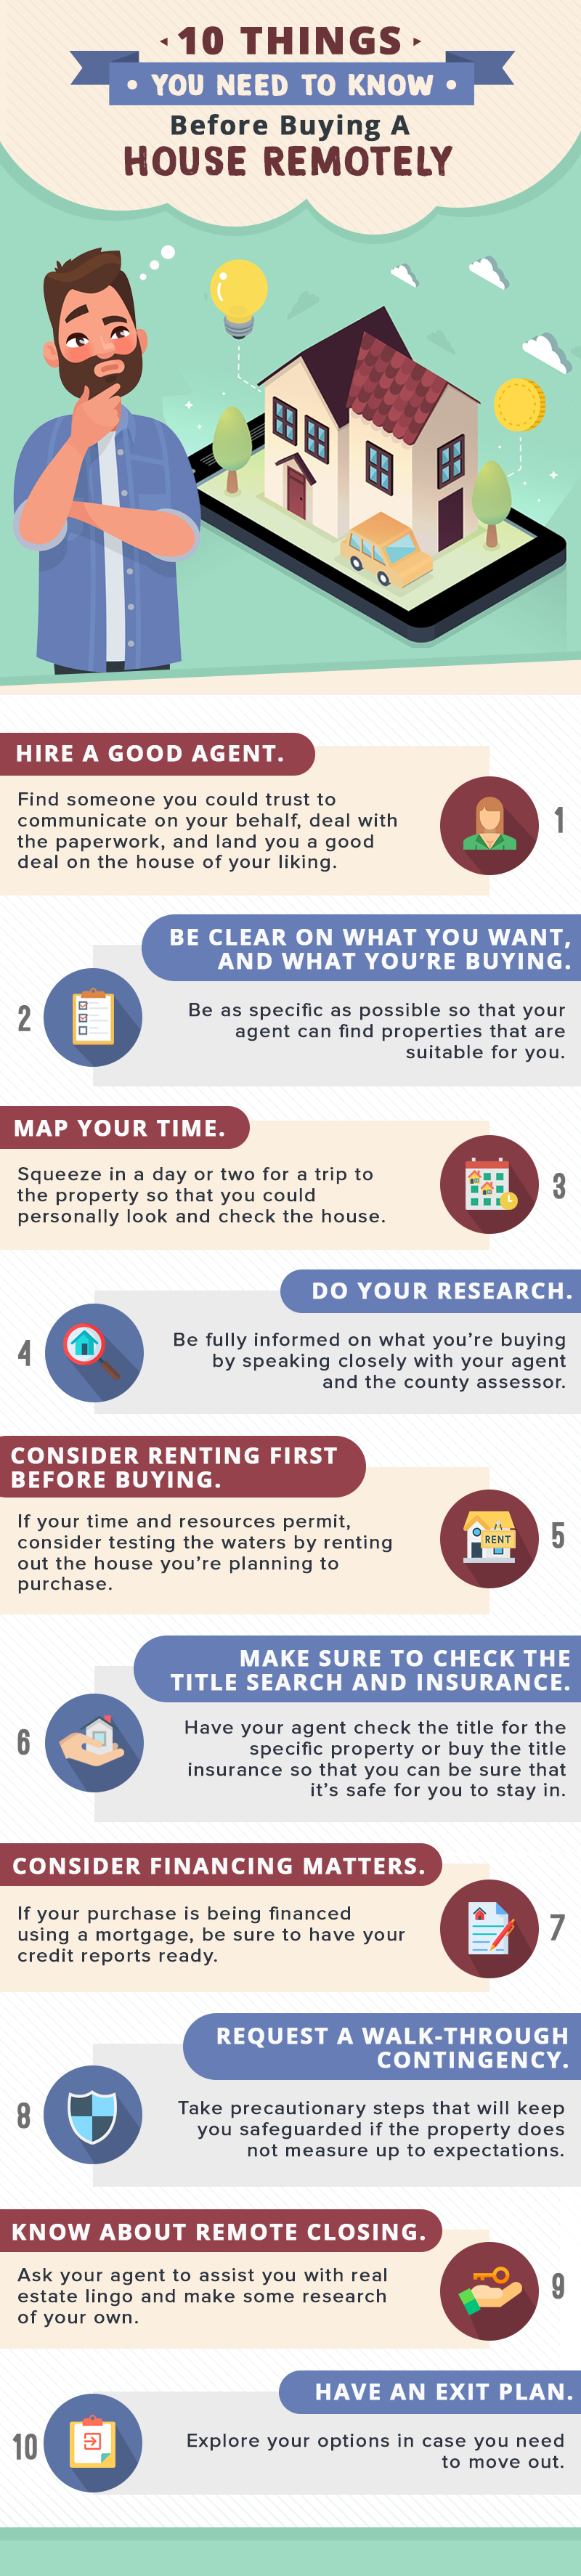 10 Things You Need To Know Before Buying A House Remotely